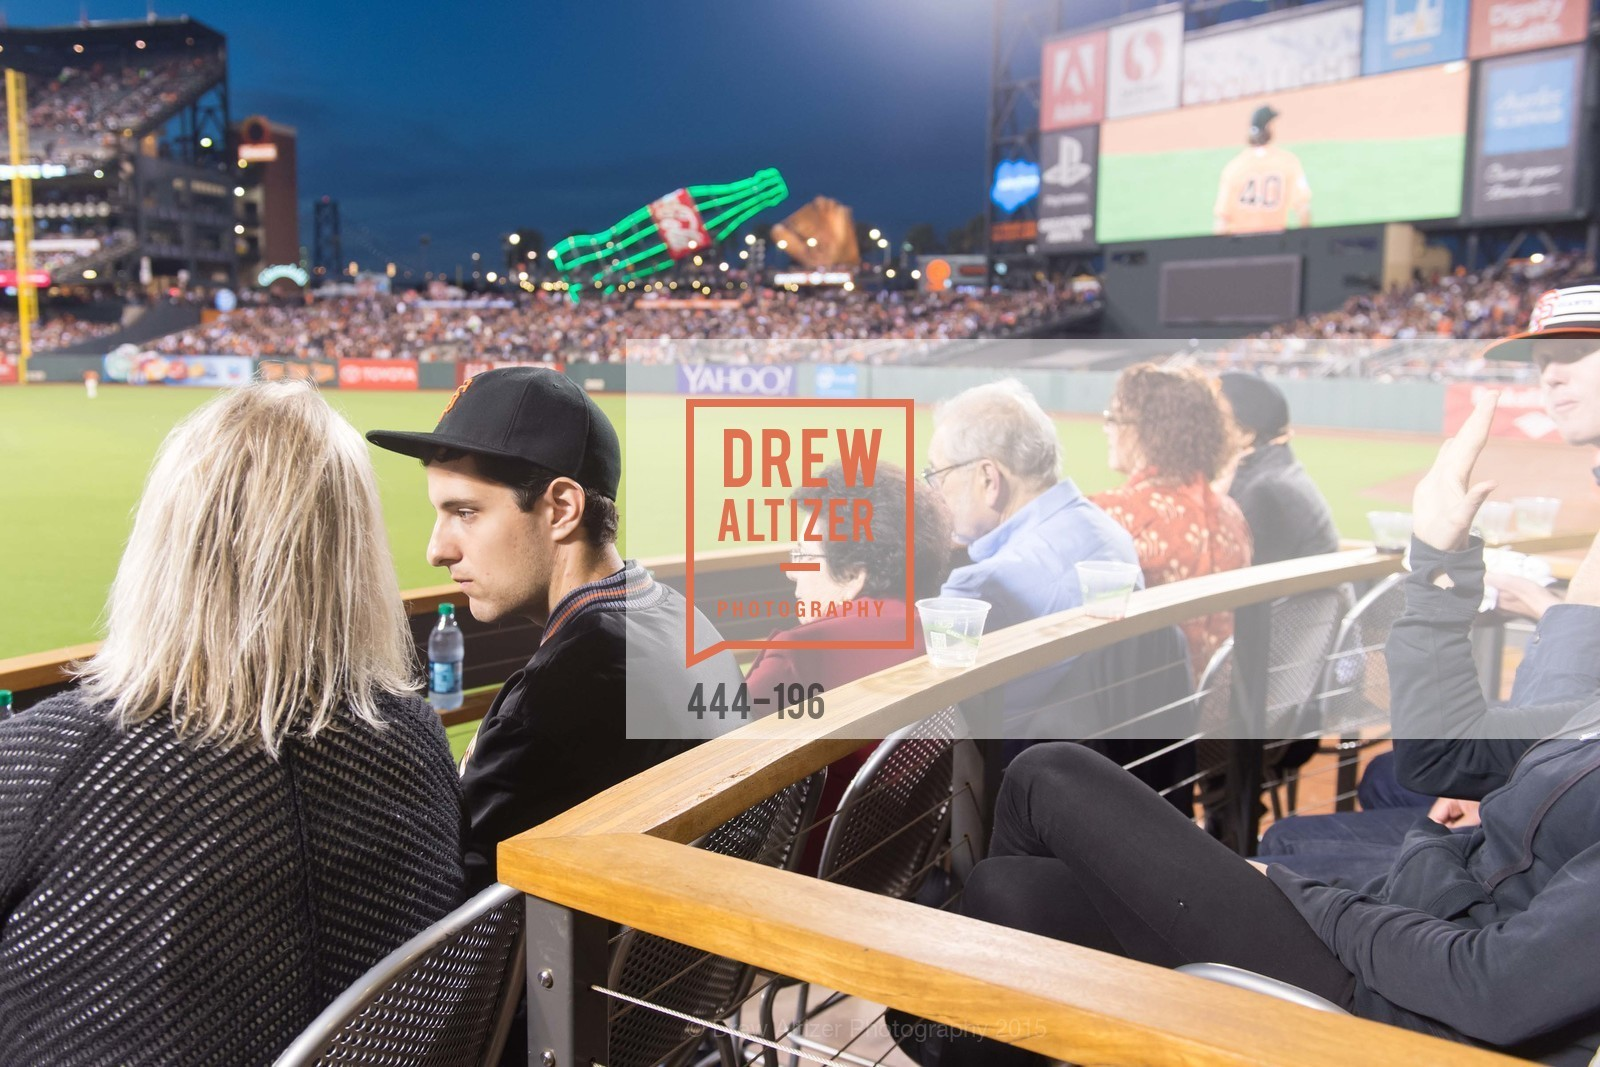 Atmosphere, Francis Ford Coppola Winery Presents Diamond on the Diamond, San Francisco Giants AT&T Park, Virgin America Loft. 24 Willie Mays Plaza, July 10th, 2015,Drew Altizer, Drew Altizer Photography, full-service agency, private events, San Francisco photographer, photographer california